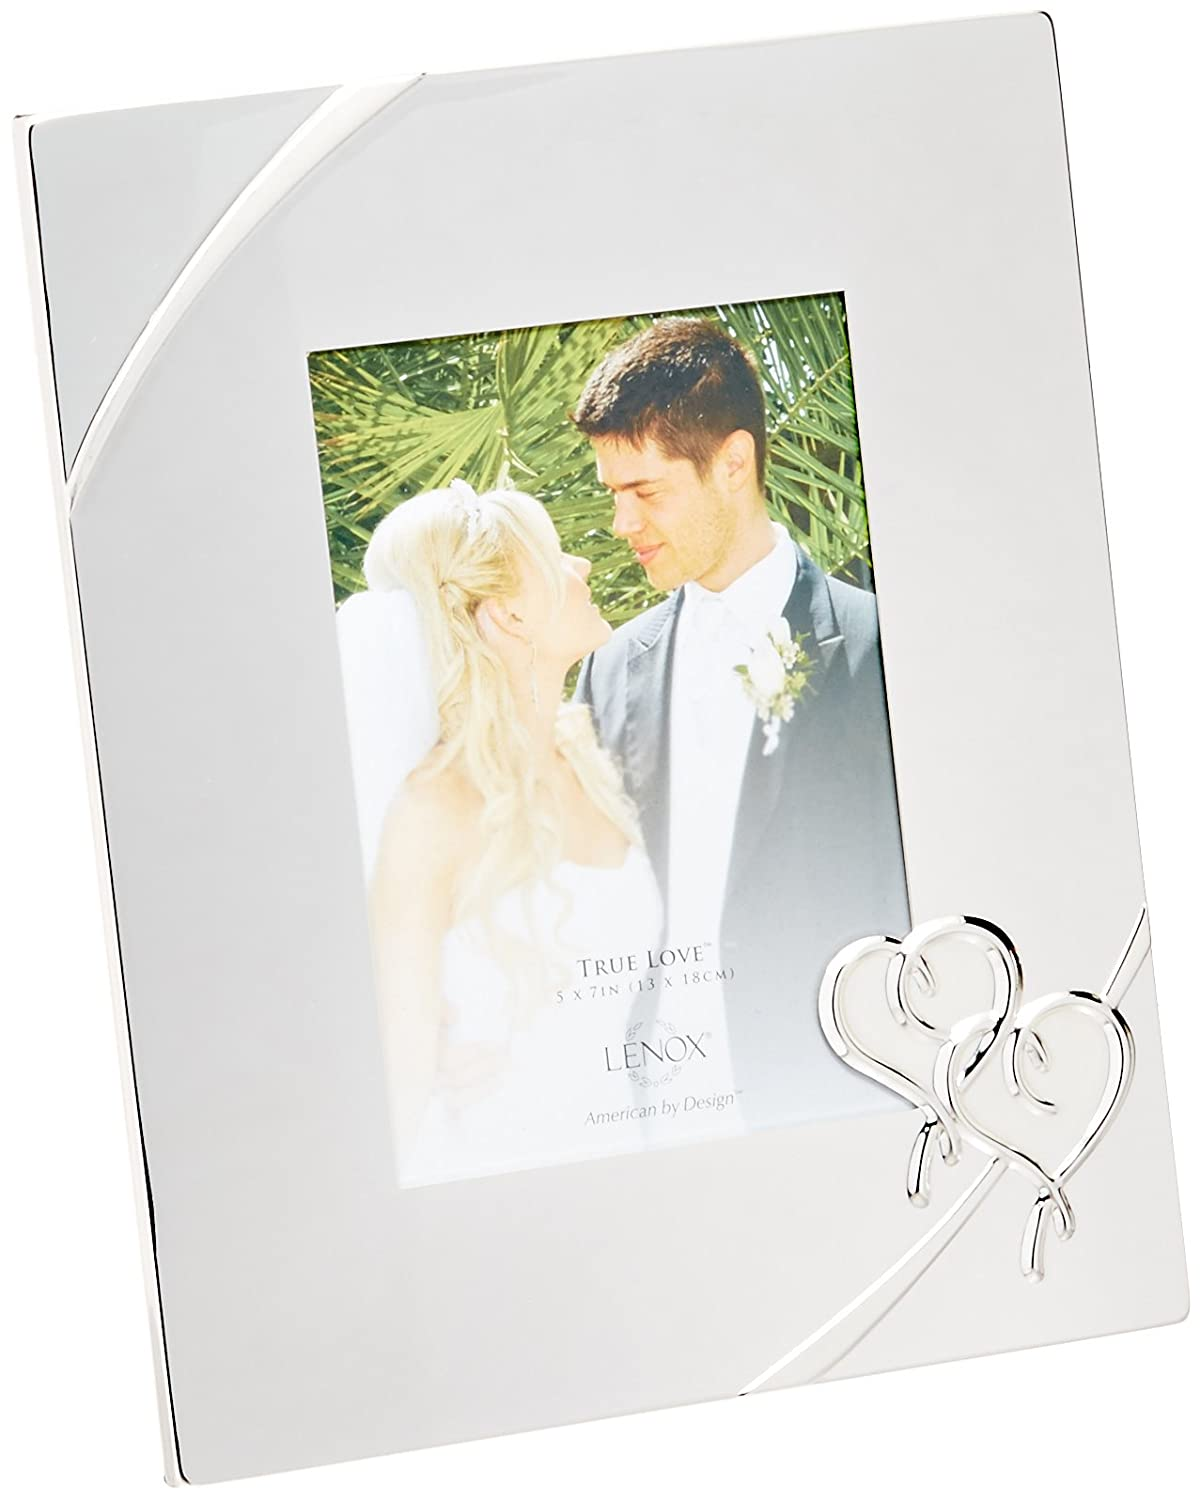 Lenox True Love 5x7 Picture Frame 812616